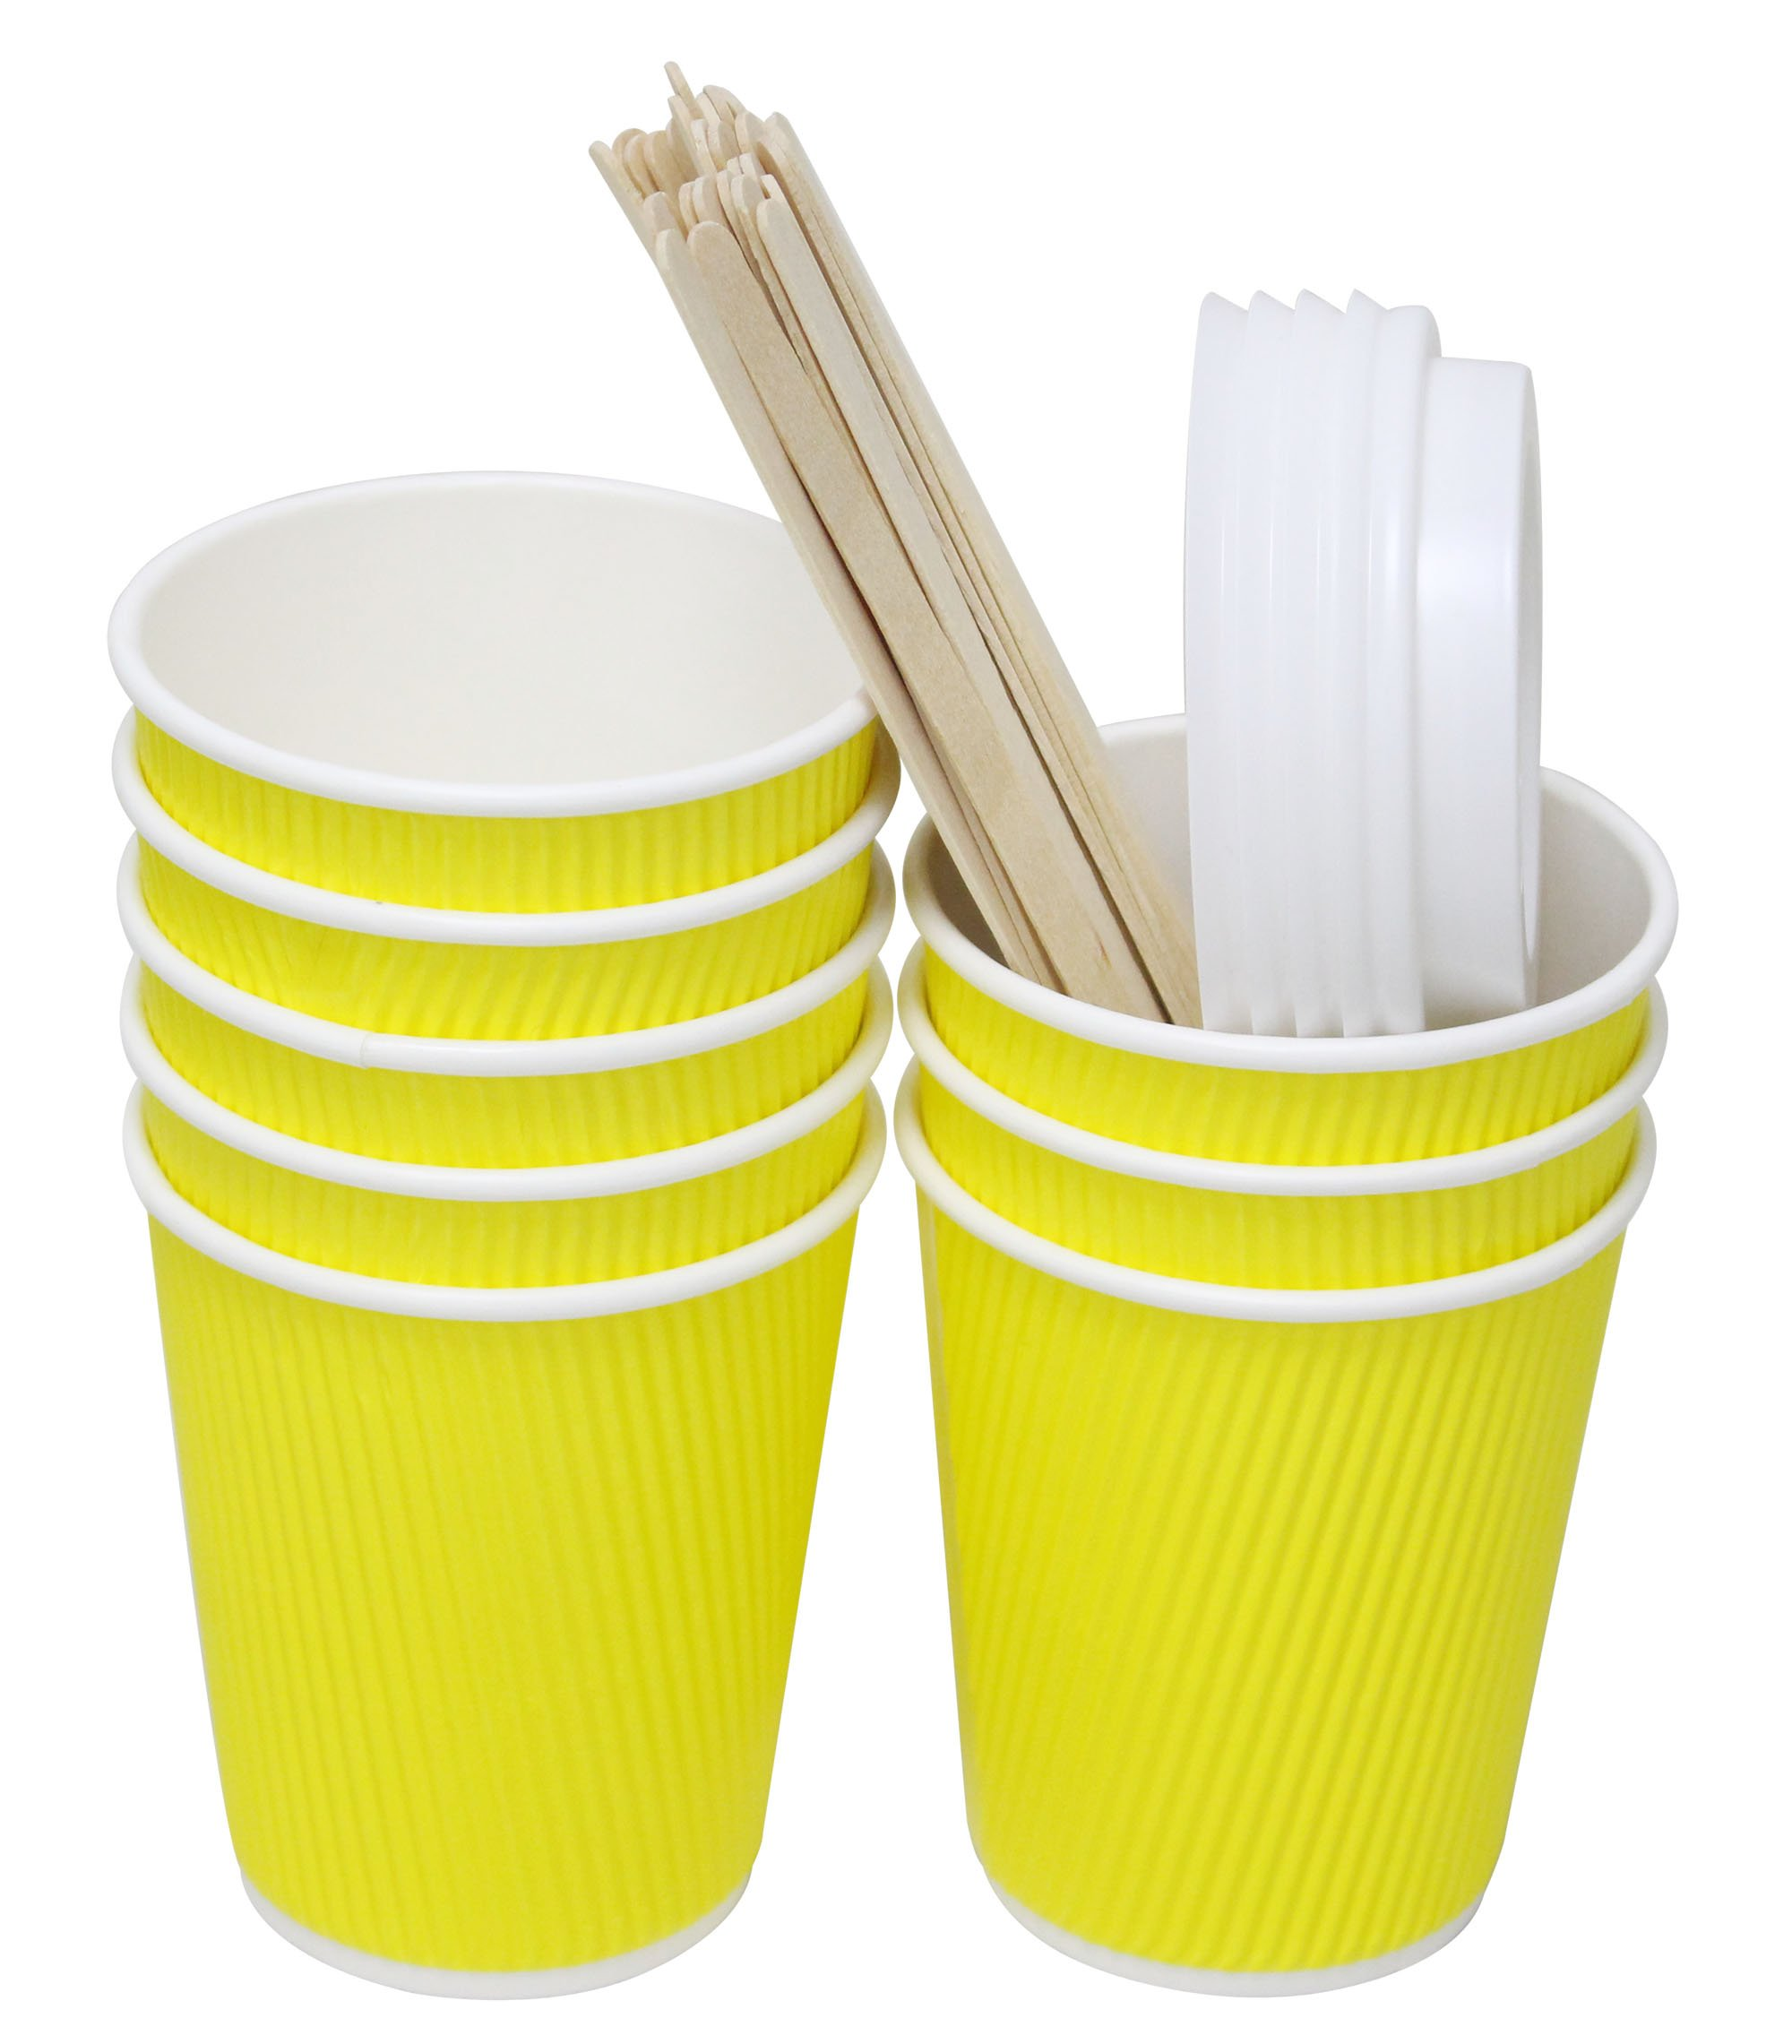 QuaCity 8 Oz Insulated Disposable Ripple Coffee Cups with White Lids, Wood Stirrers 50 Count - Perfect for Hot and Cold Beverages - No Soaking or Smells - Take To Go (Yellow)